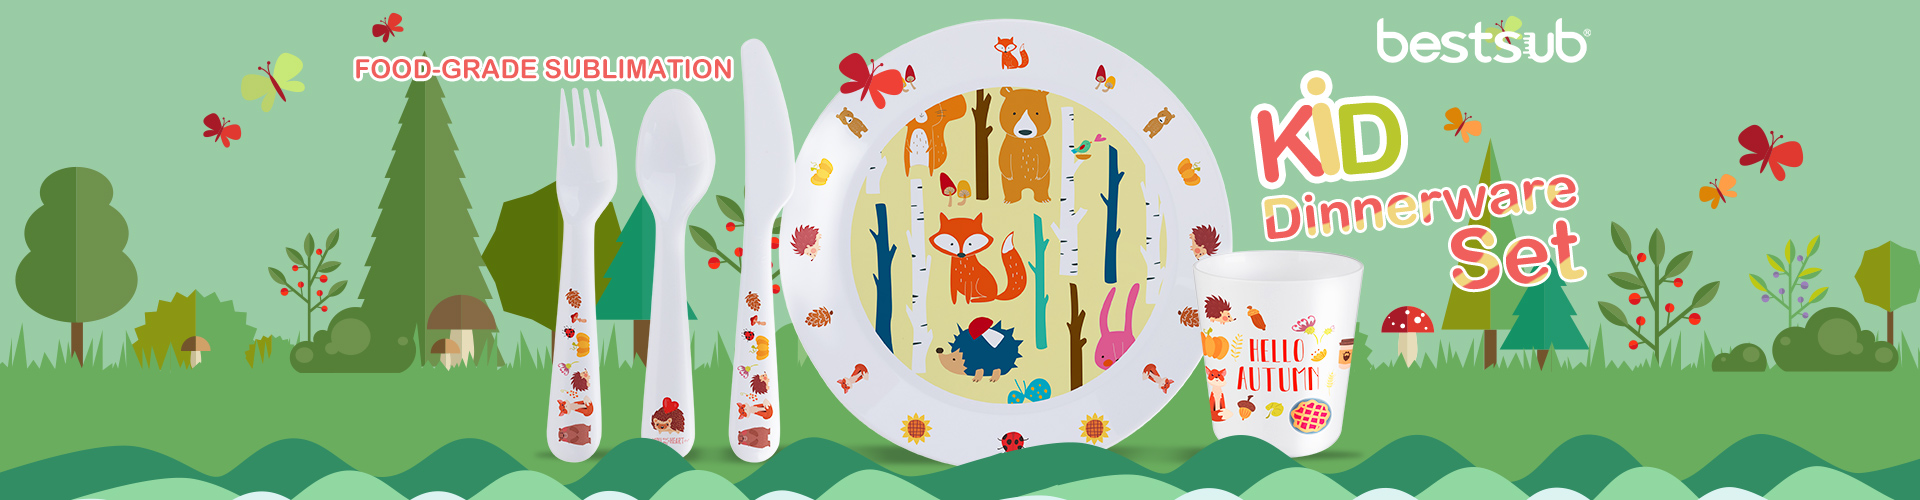 2018-12-11_Food_grade_Sublimation_Kid_Dinnerware_Set